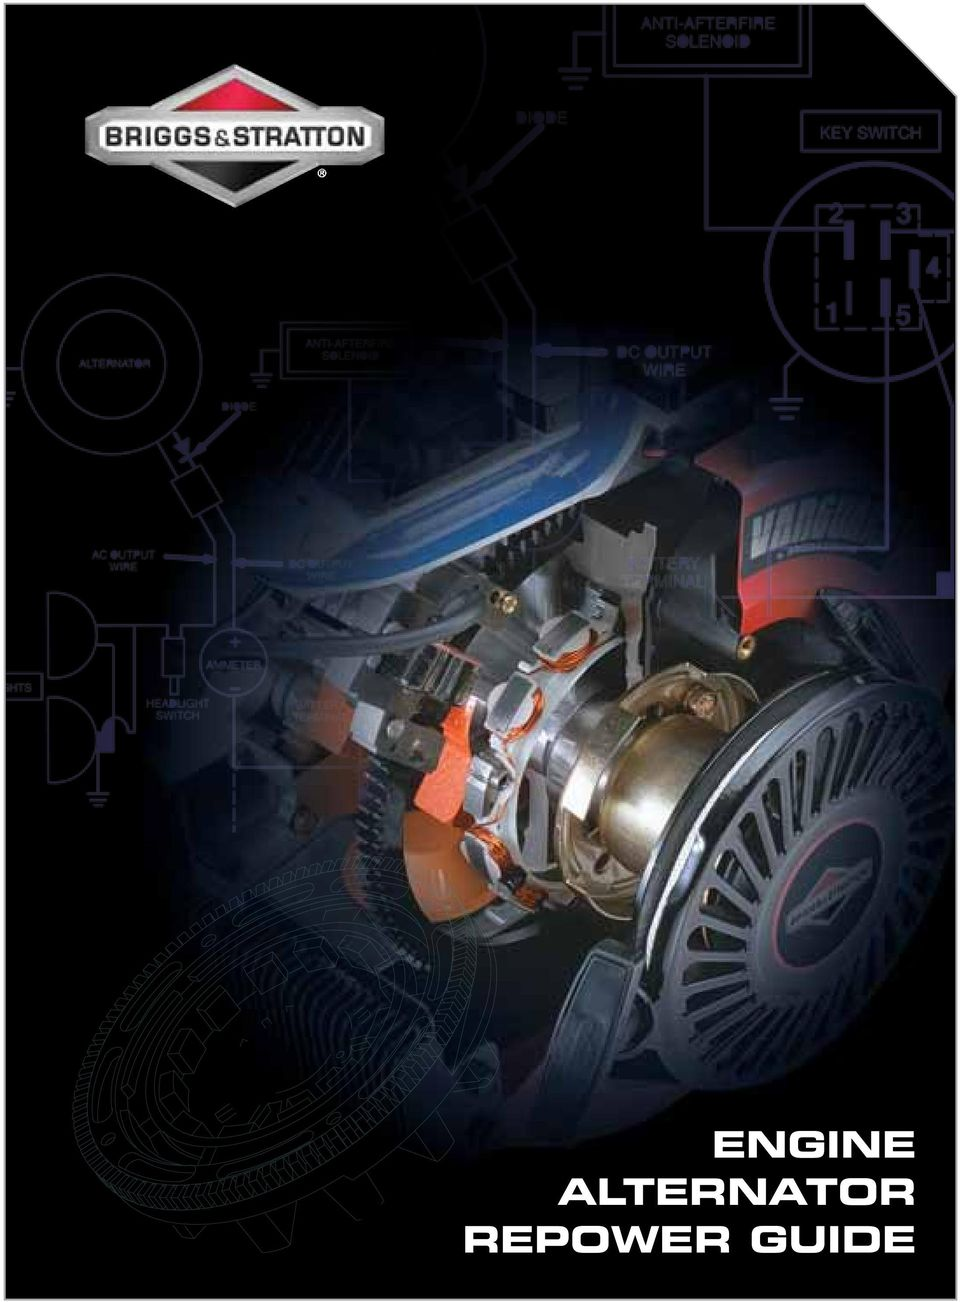 Engine Alternator Repower Guide Pdf Stator Diode Wire Wiring Harness For Briggs And 2 Thepowerportalcom Your One Stop Information Source Stratton Has Developed A Powerful Flexible Private